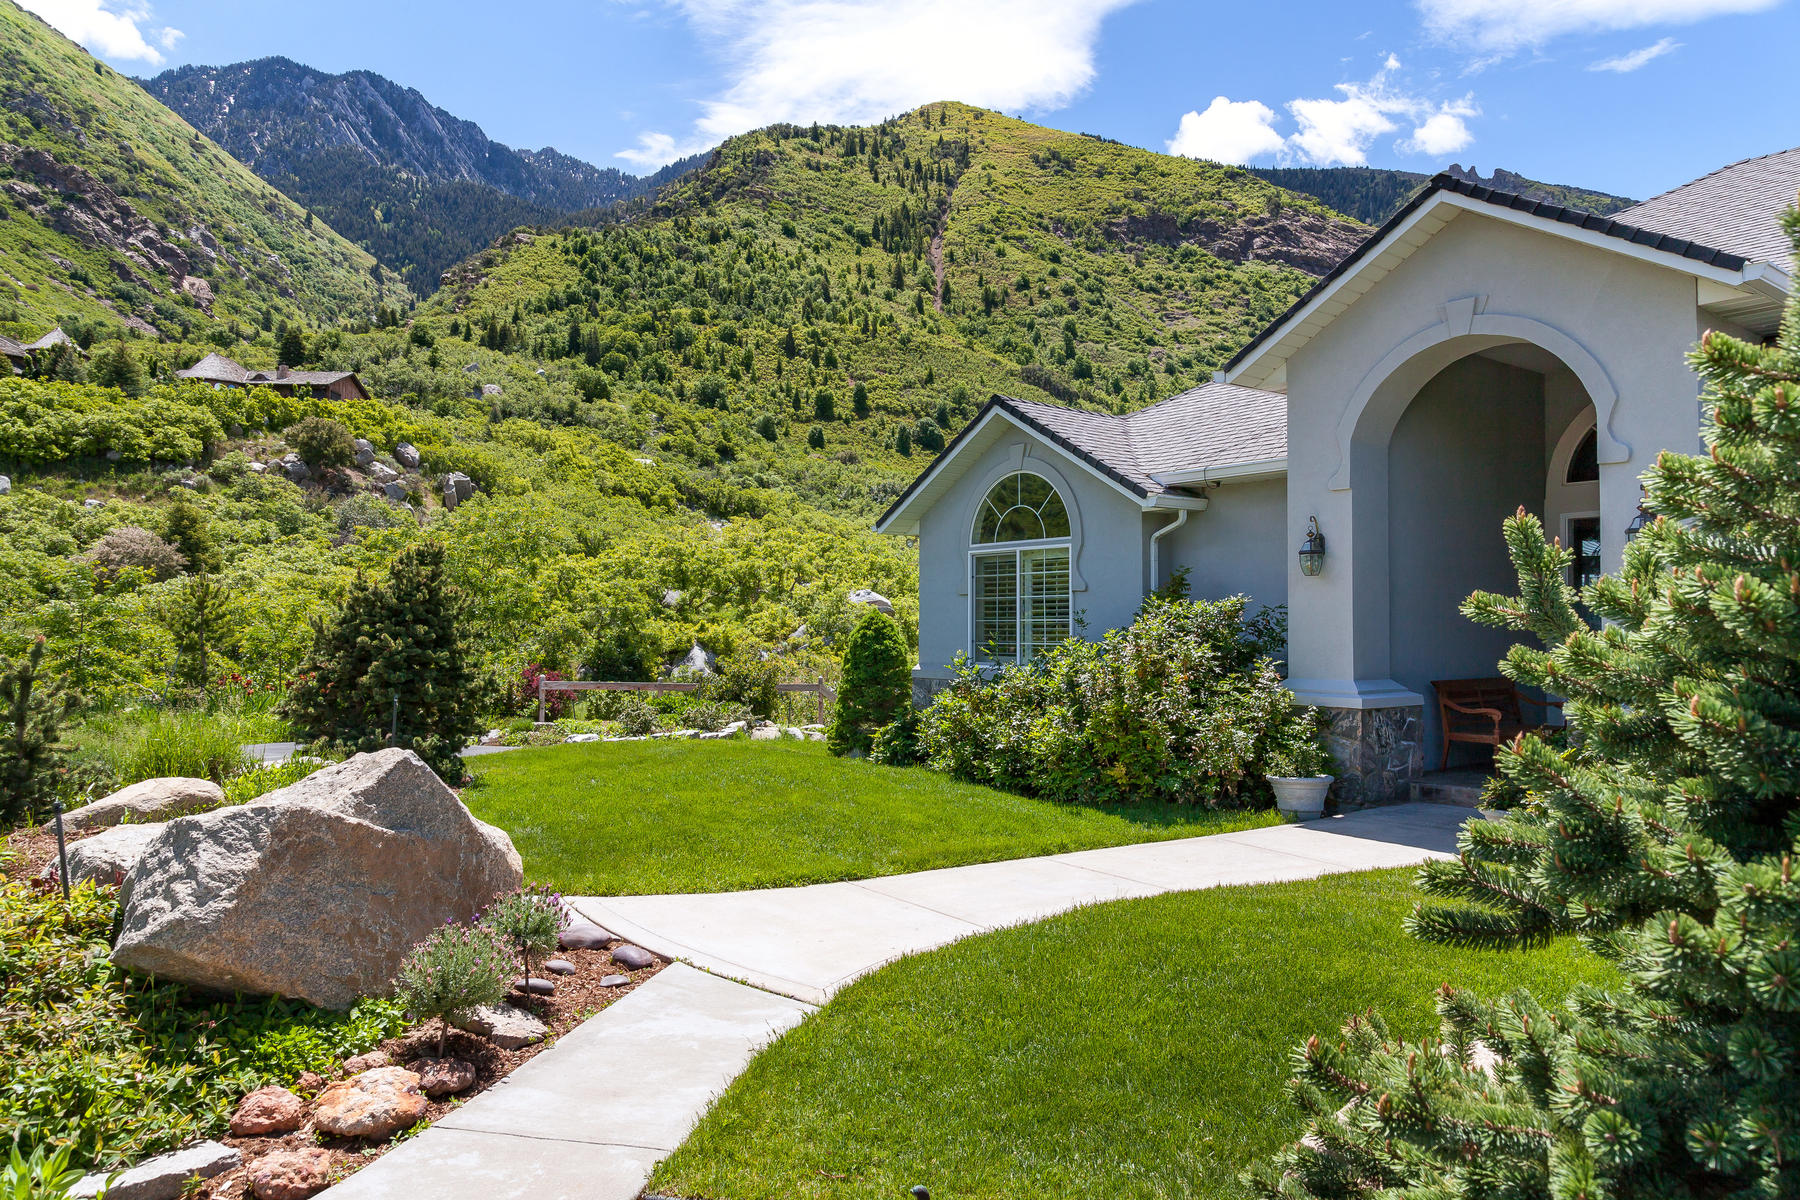 Single Family Homes for Sale at Picturesque Five Acre Estate 11489 S Oberland Rd, Sandy, Utah 84092 United States